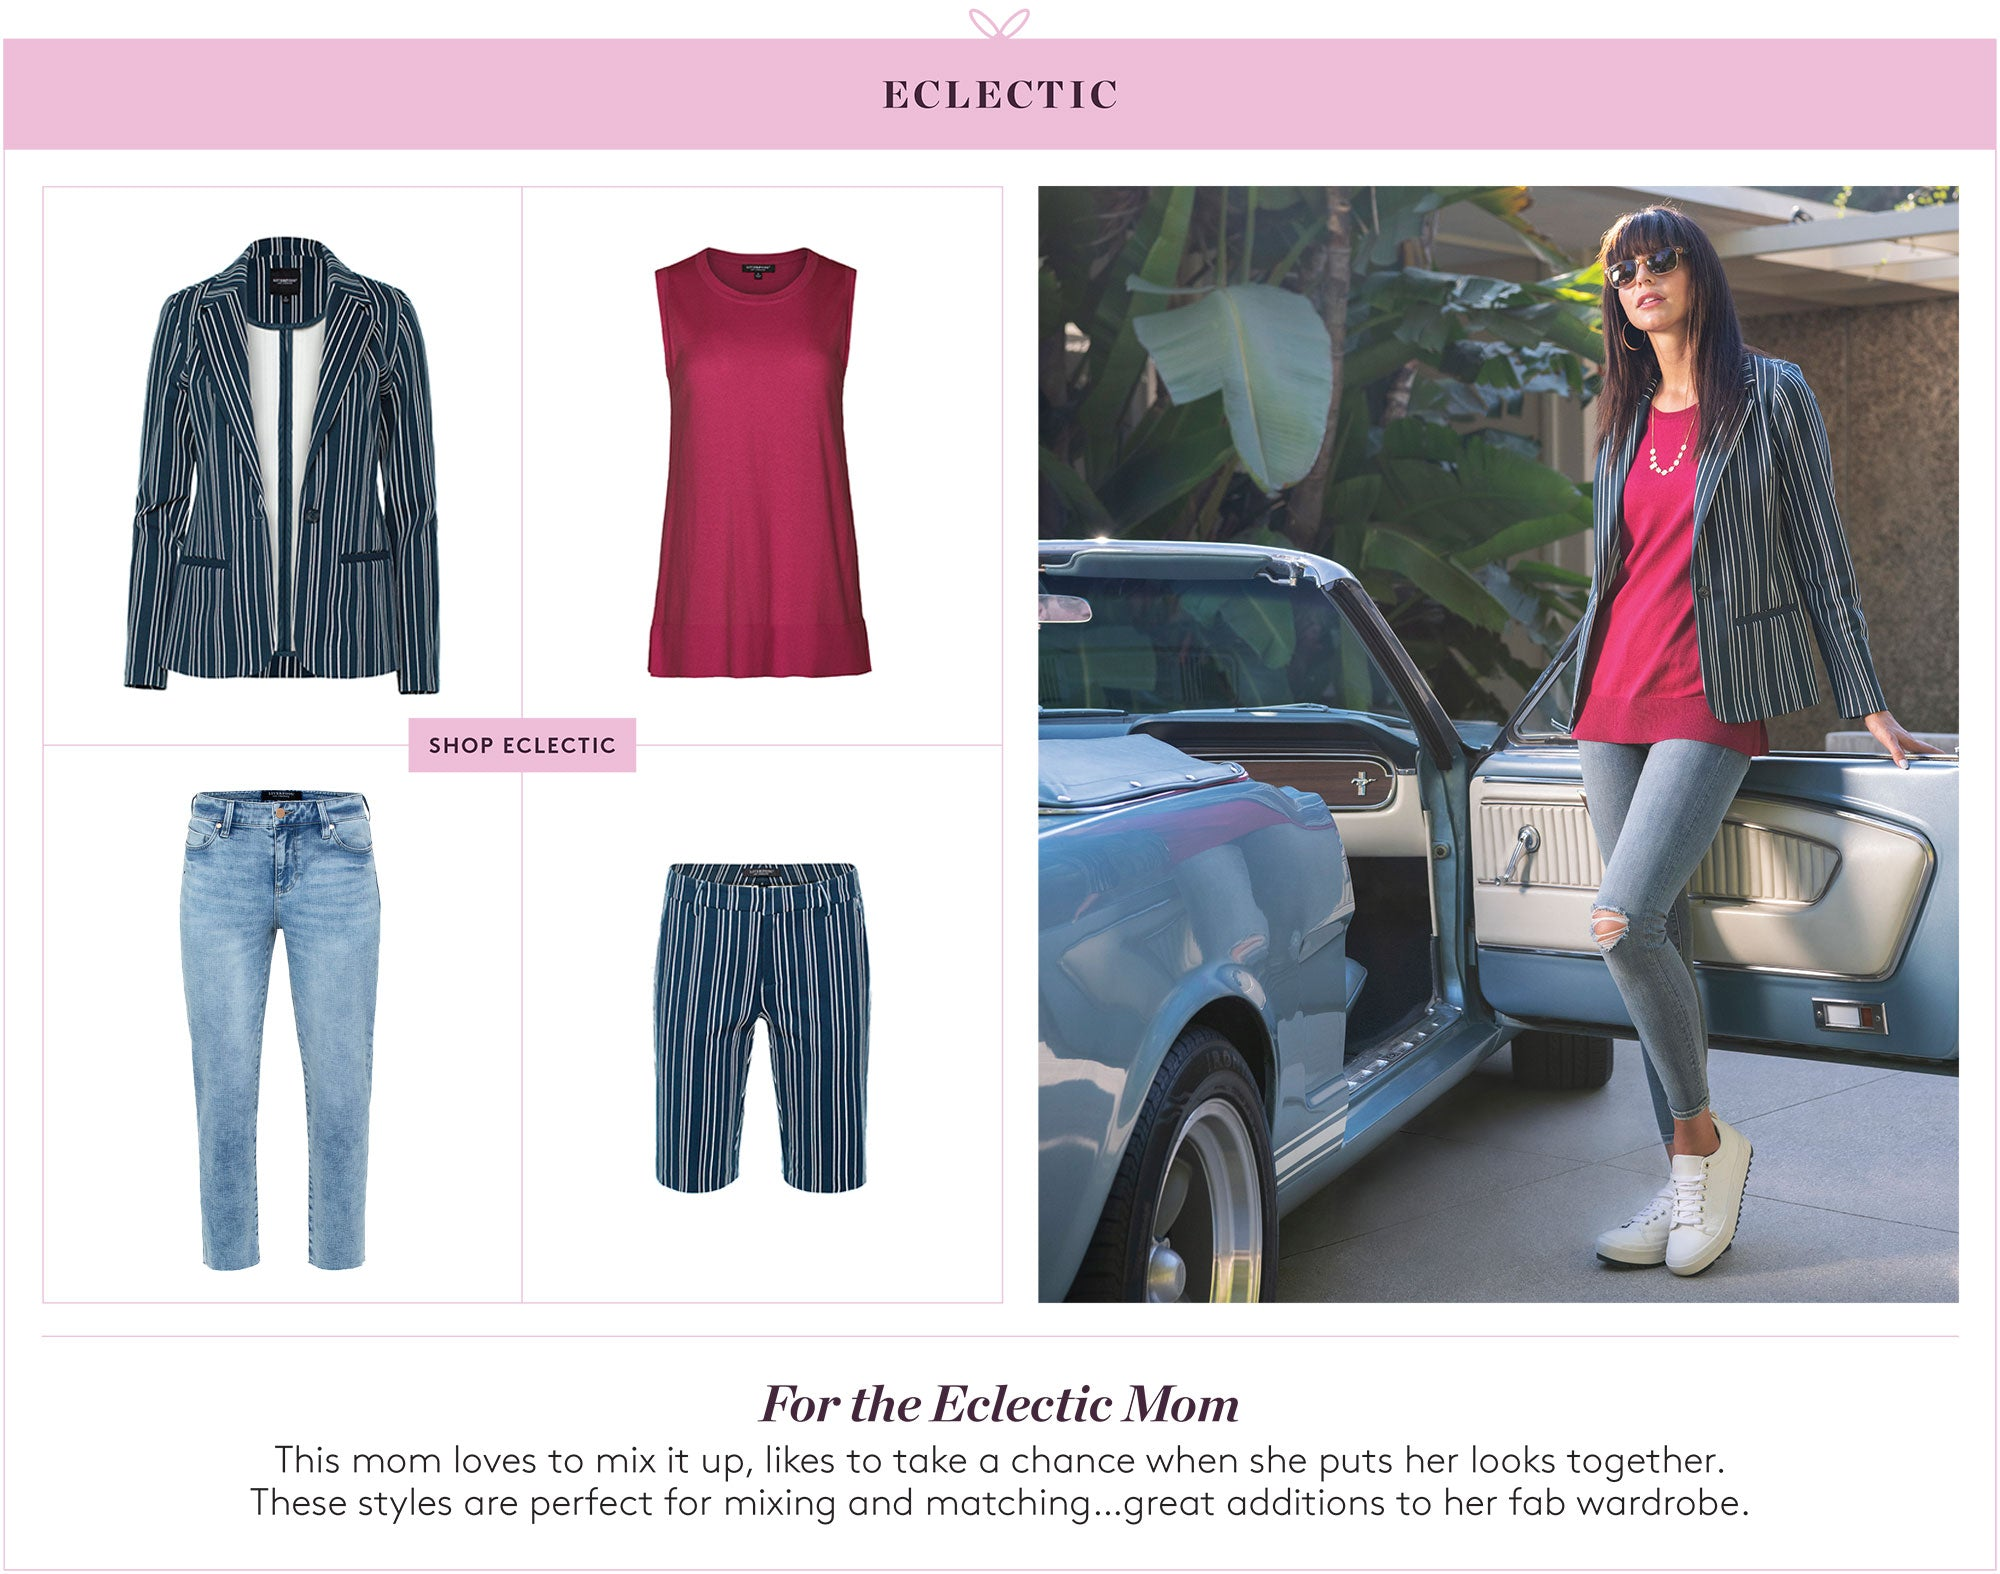 Gifts for the Eclectic Mom: This mom loves to mix it up, likes to take a chance when she puts her looks together.  These styles are perfect for mixing and matching...great additions to her fab wardrobe.